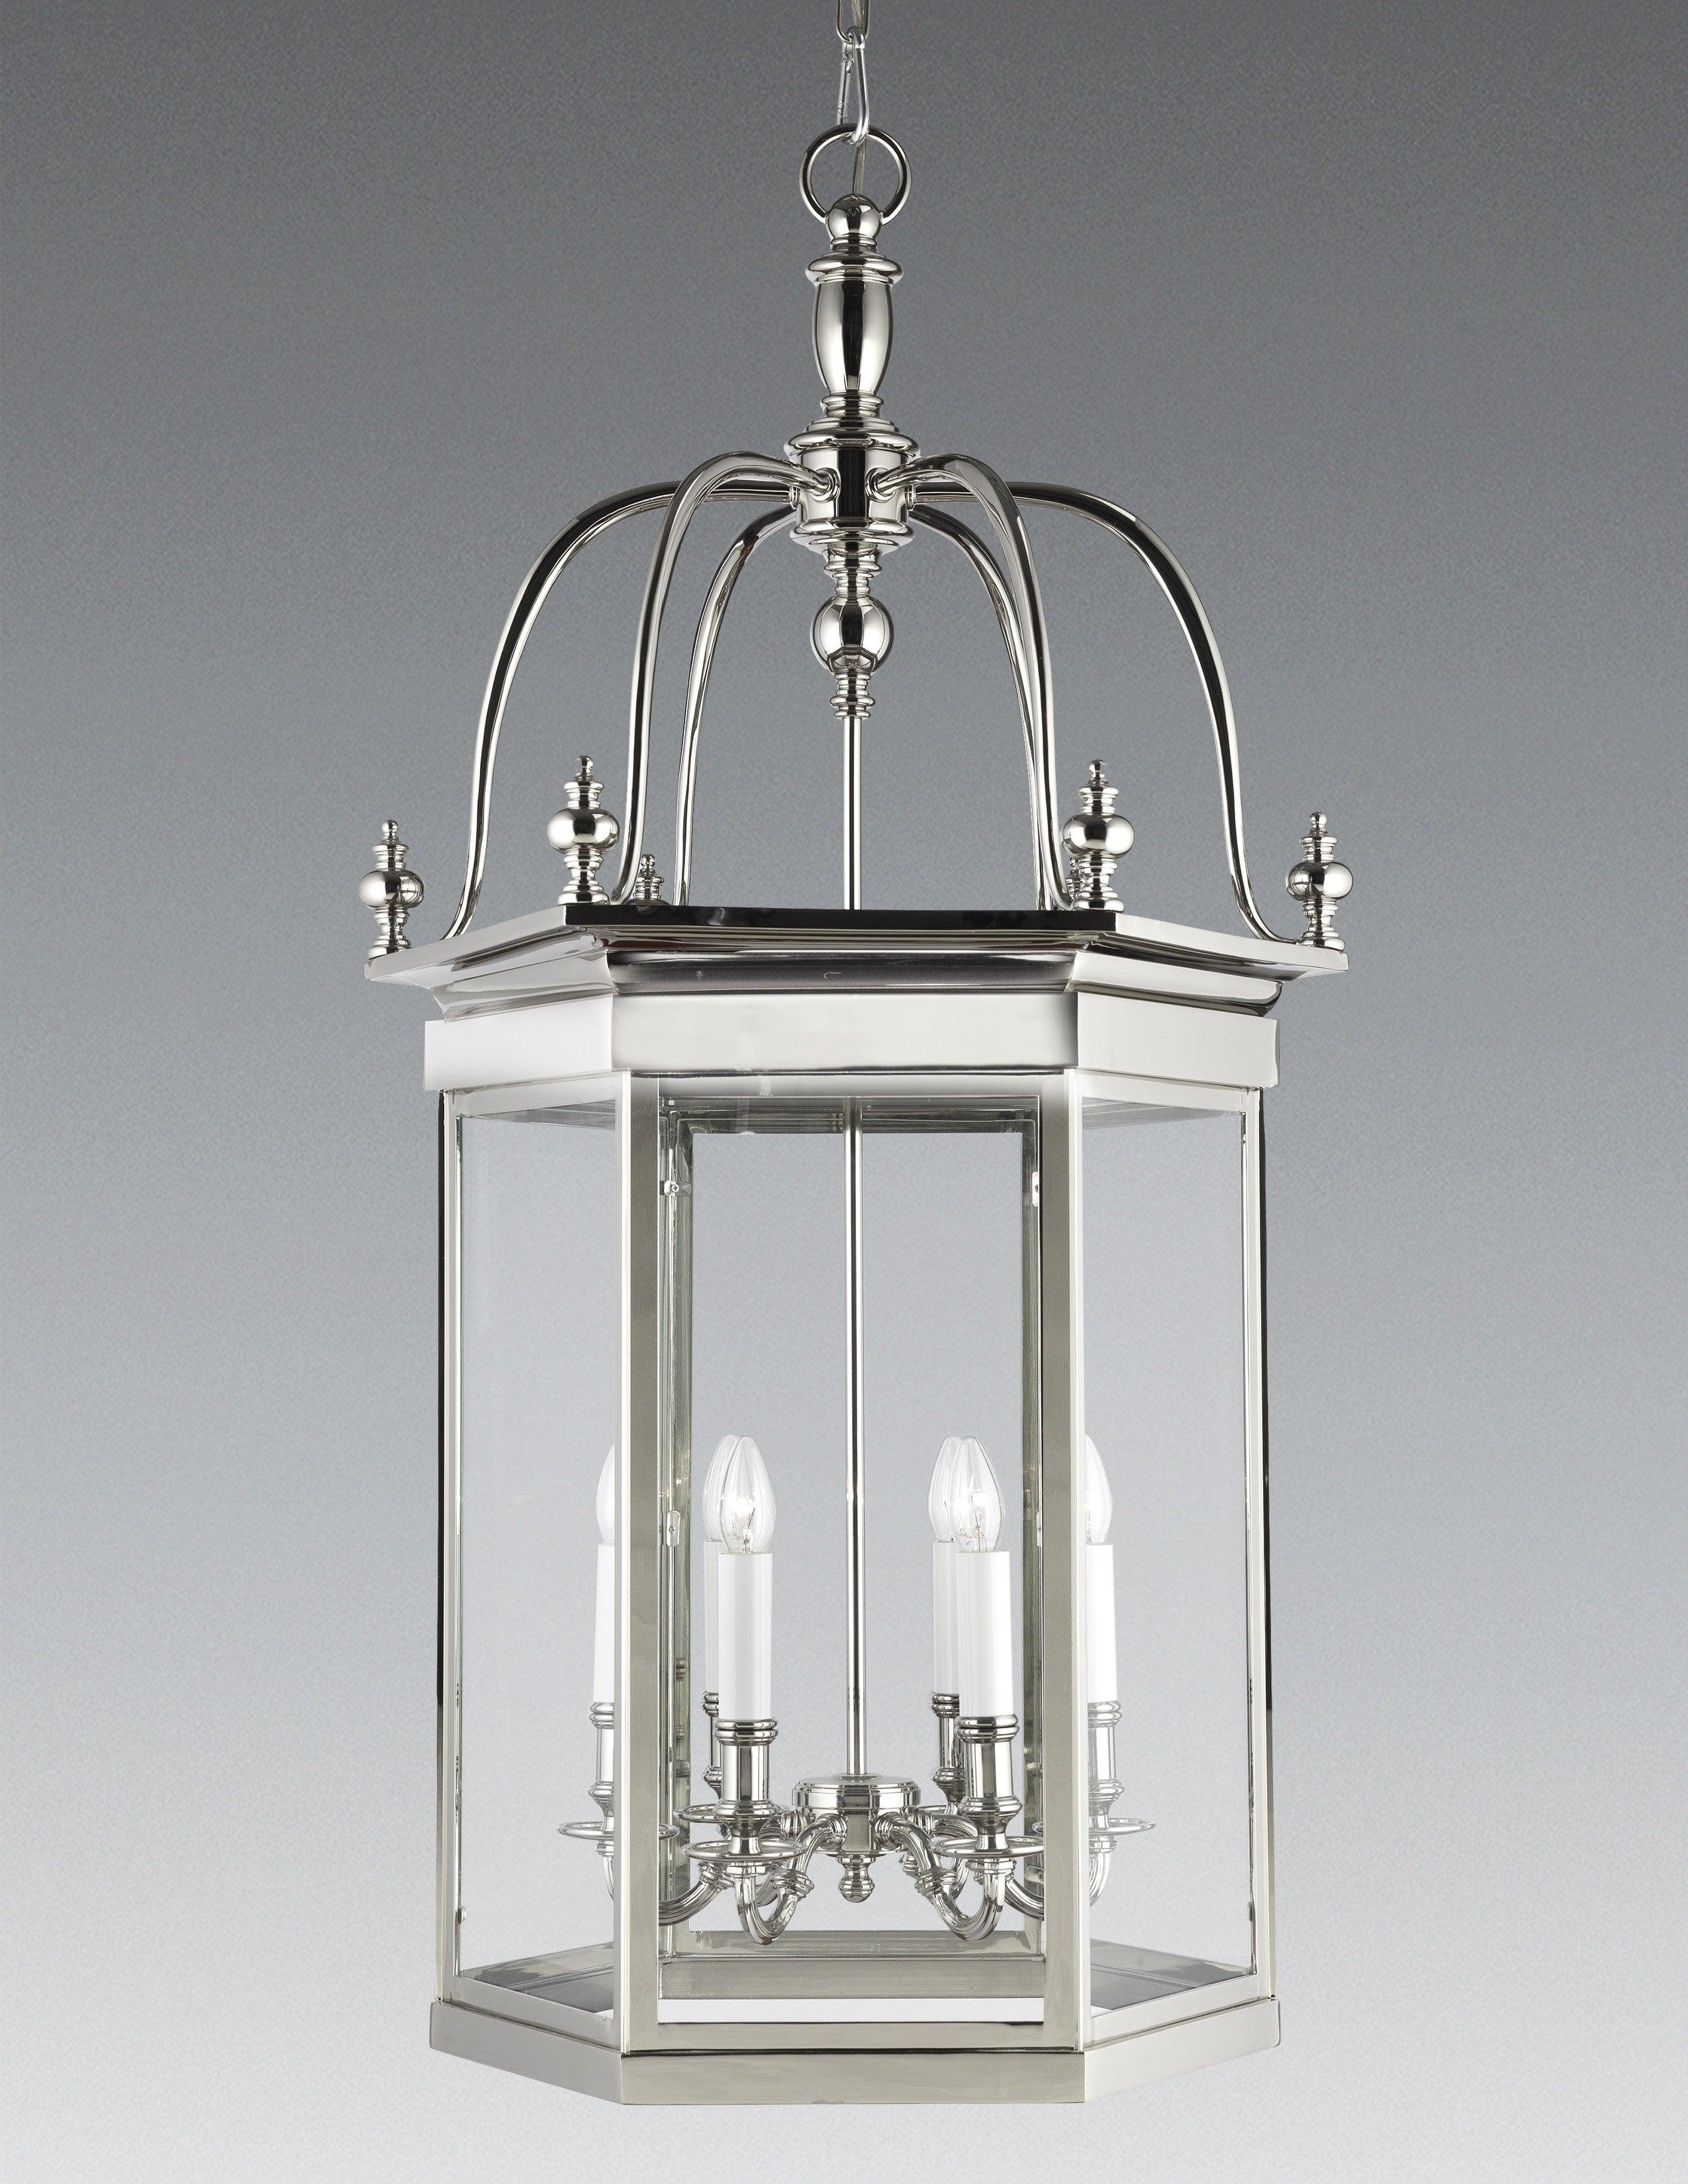 kitchen nz ideas fixture light islands lantern attachment country full modern clear three single pendant chrome best lights island table style lamps bulbs size lighting chandelier for bronze black of pendants glass design inspirational above